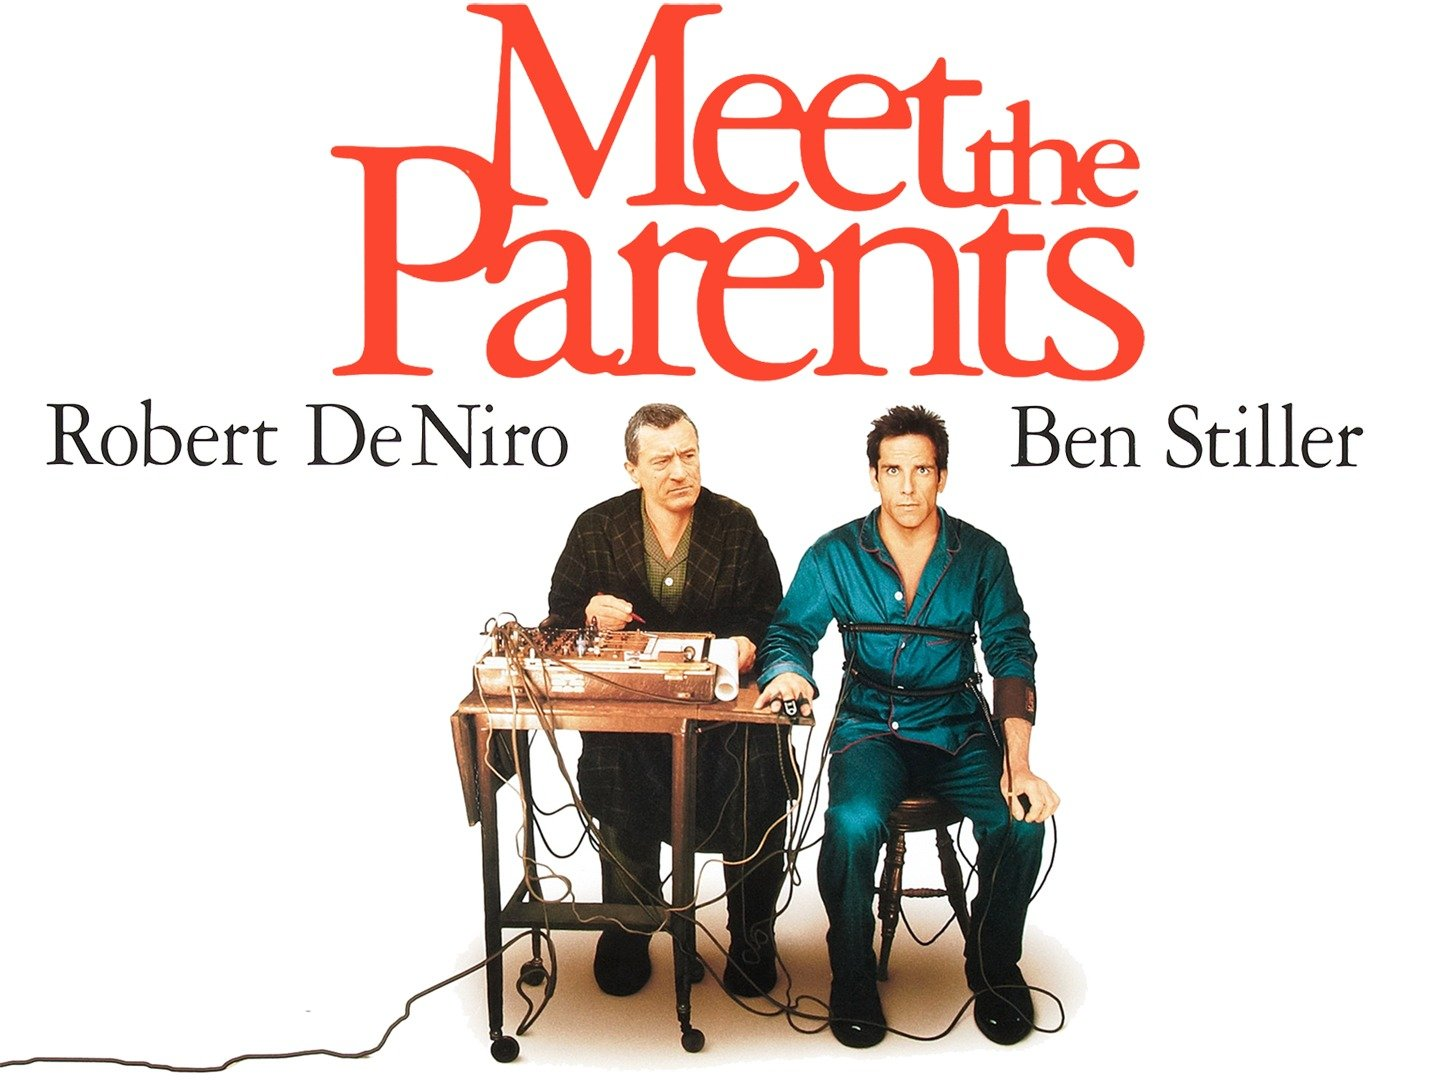 a review of the comedy meet the parents Both meet the parents and meet the fockers star ben stiller,  pairing  a serious dramatic actor with a comedian like ben stiller may.